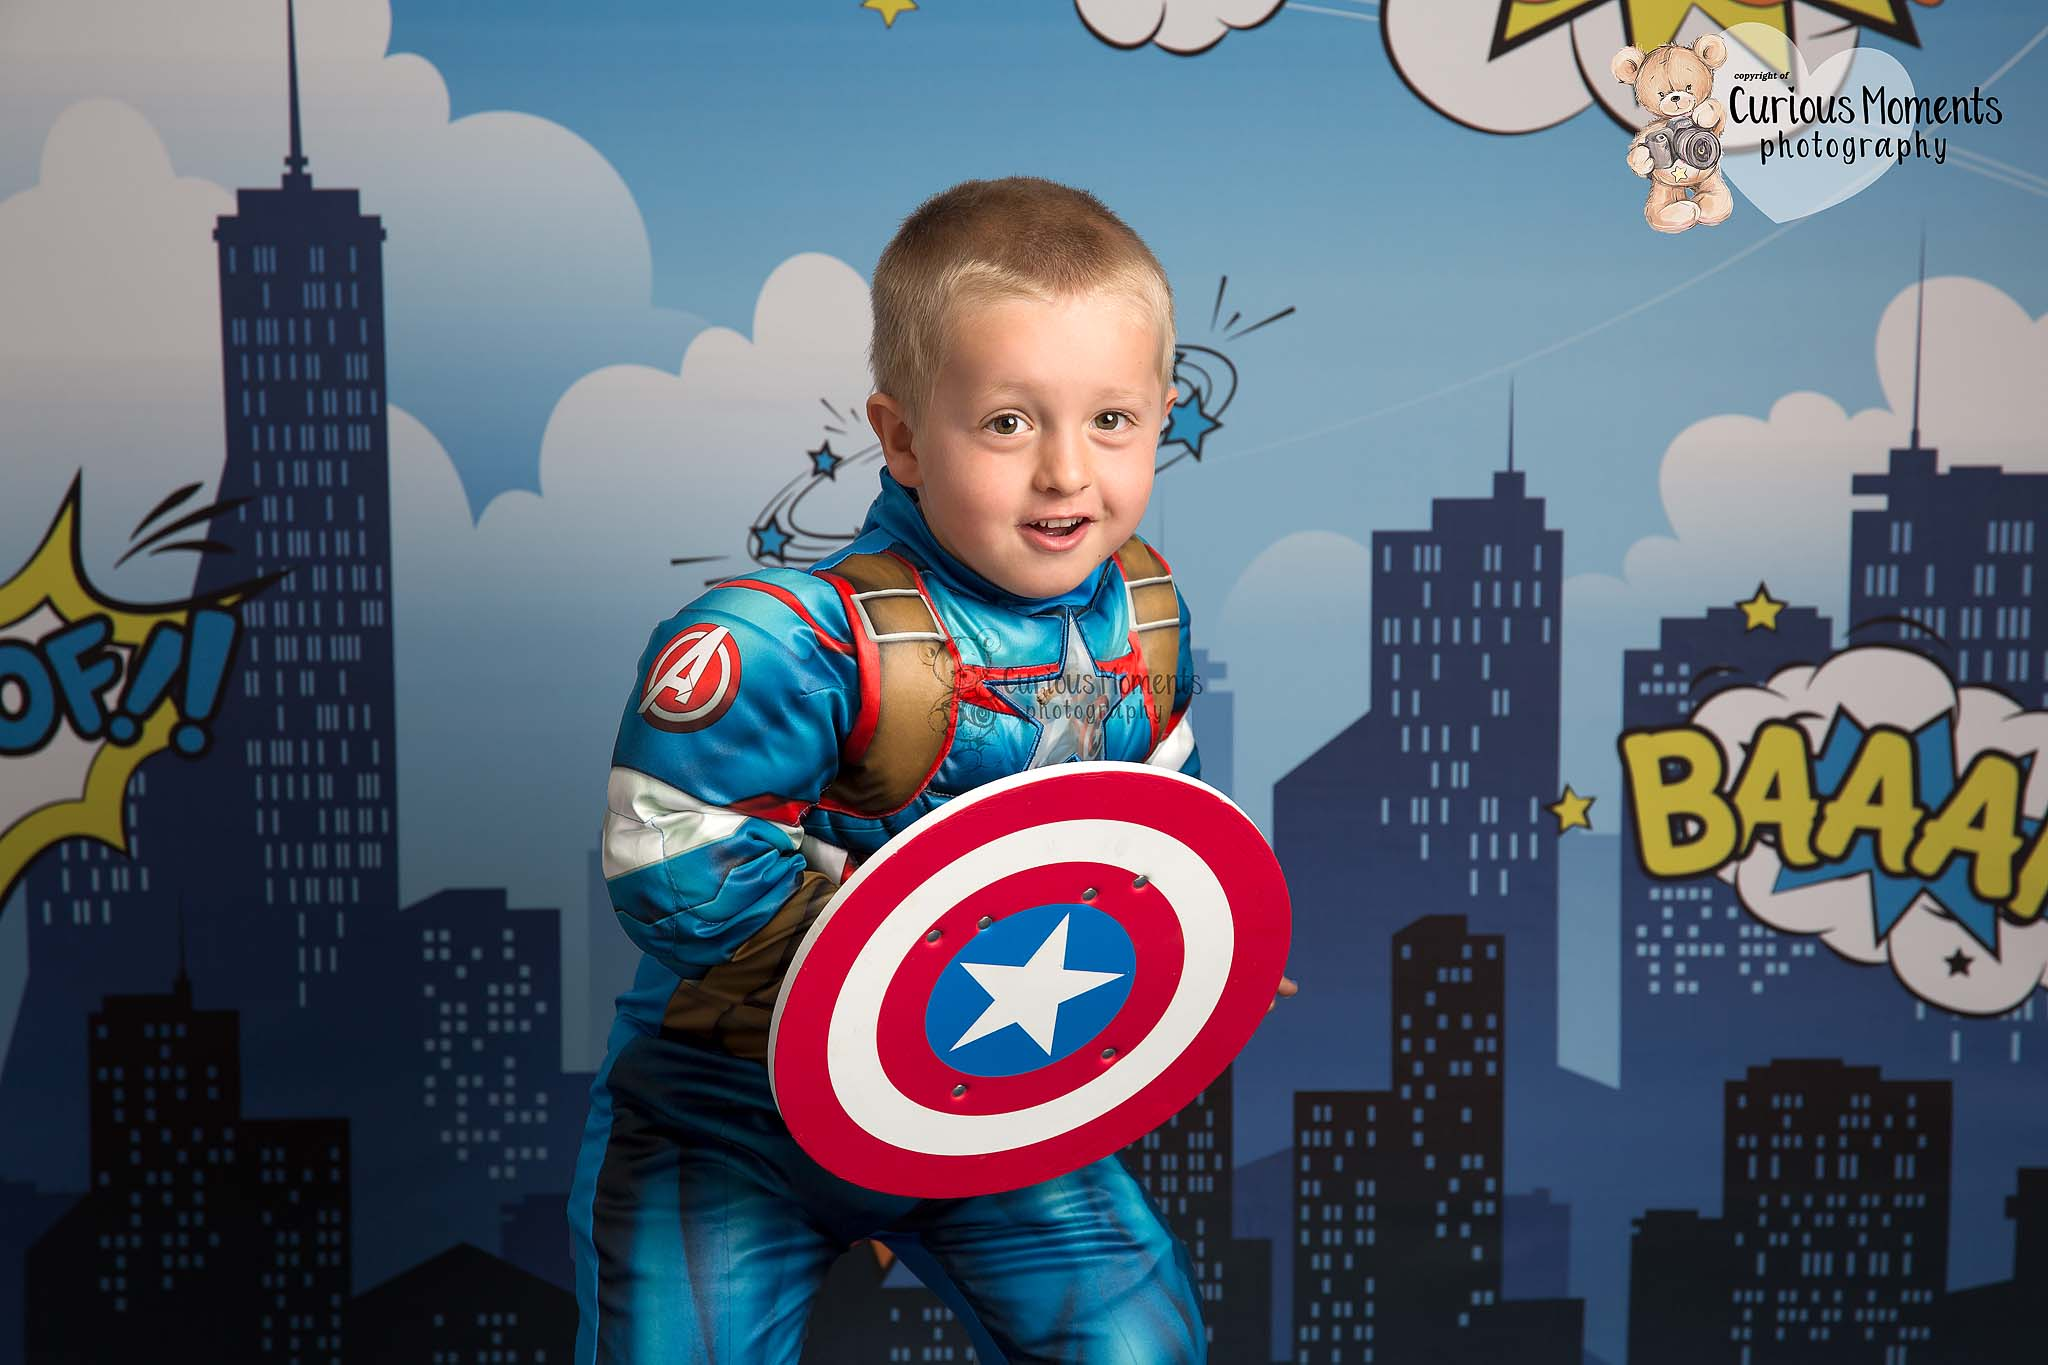 Carmartheshire Child photographer take image of young boy as captain america on a superheor themebed background